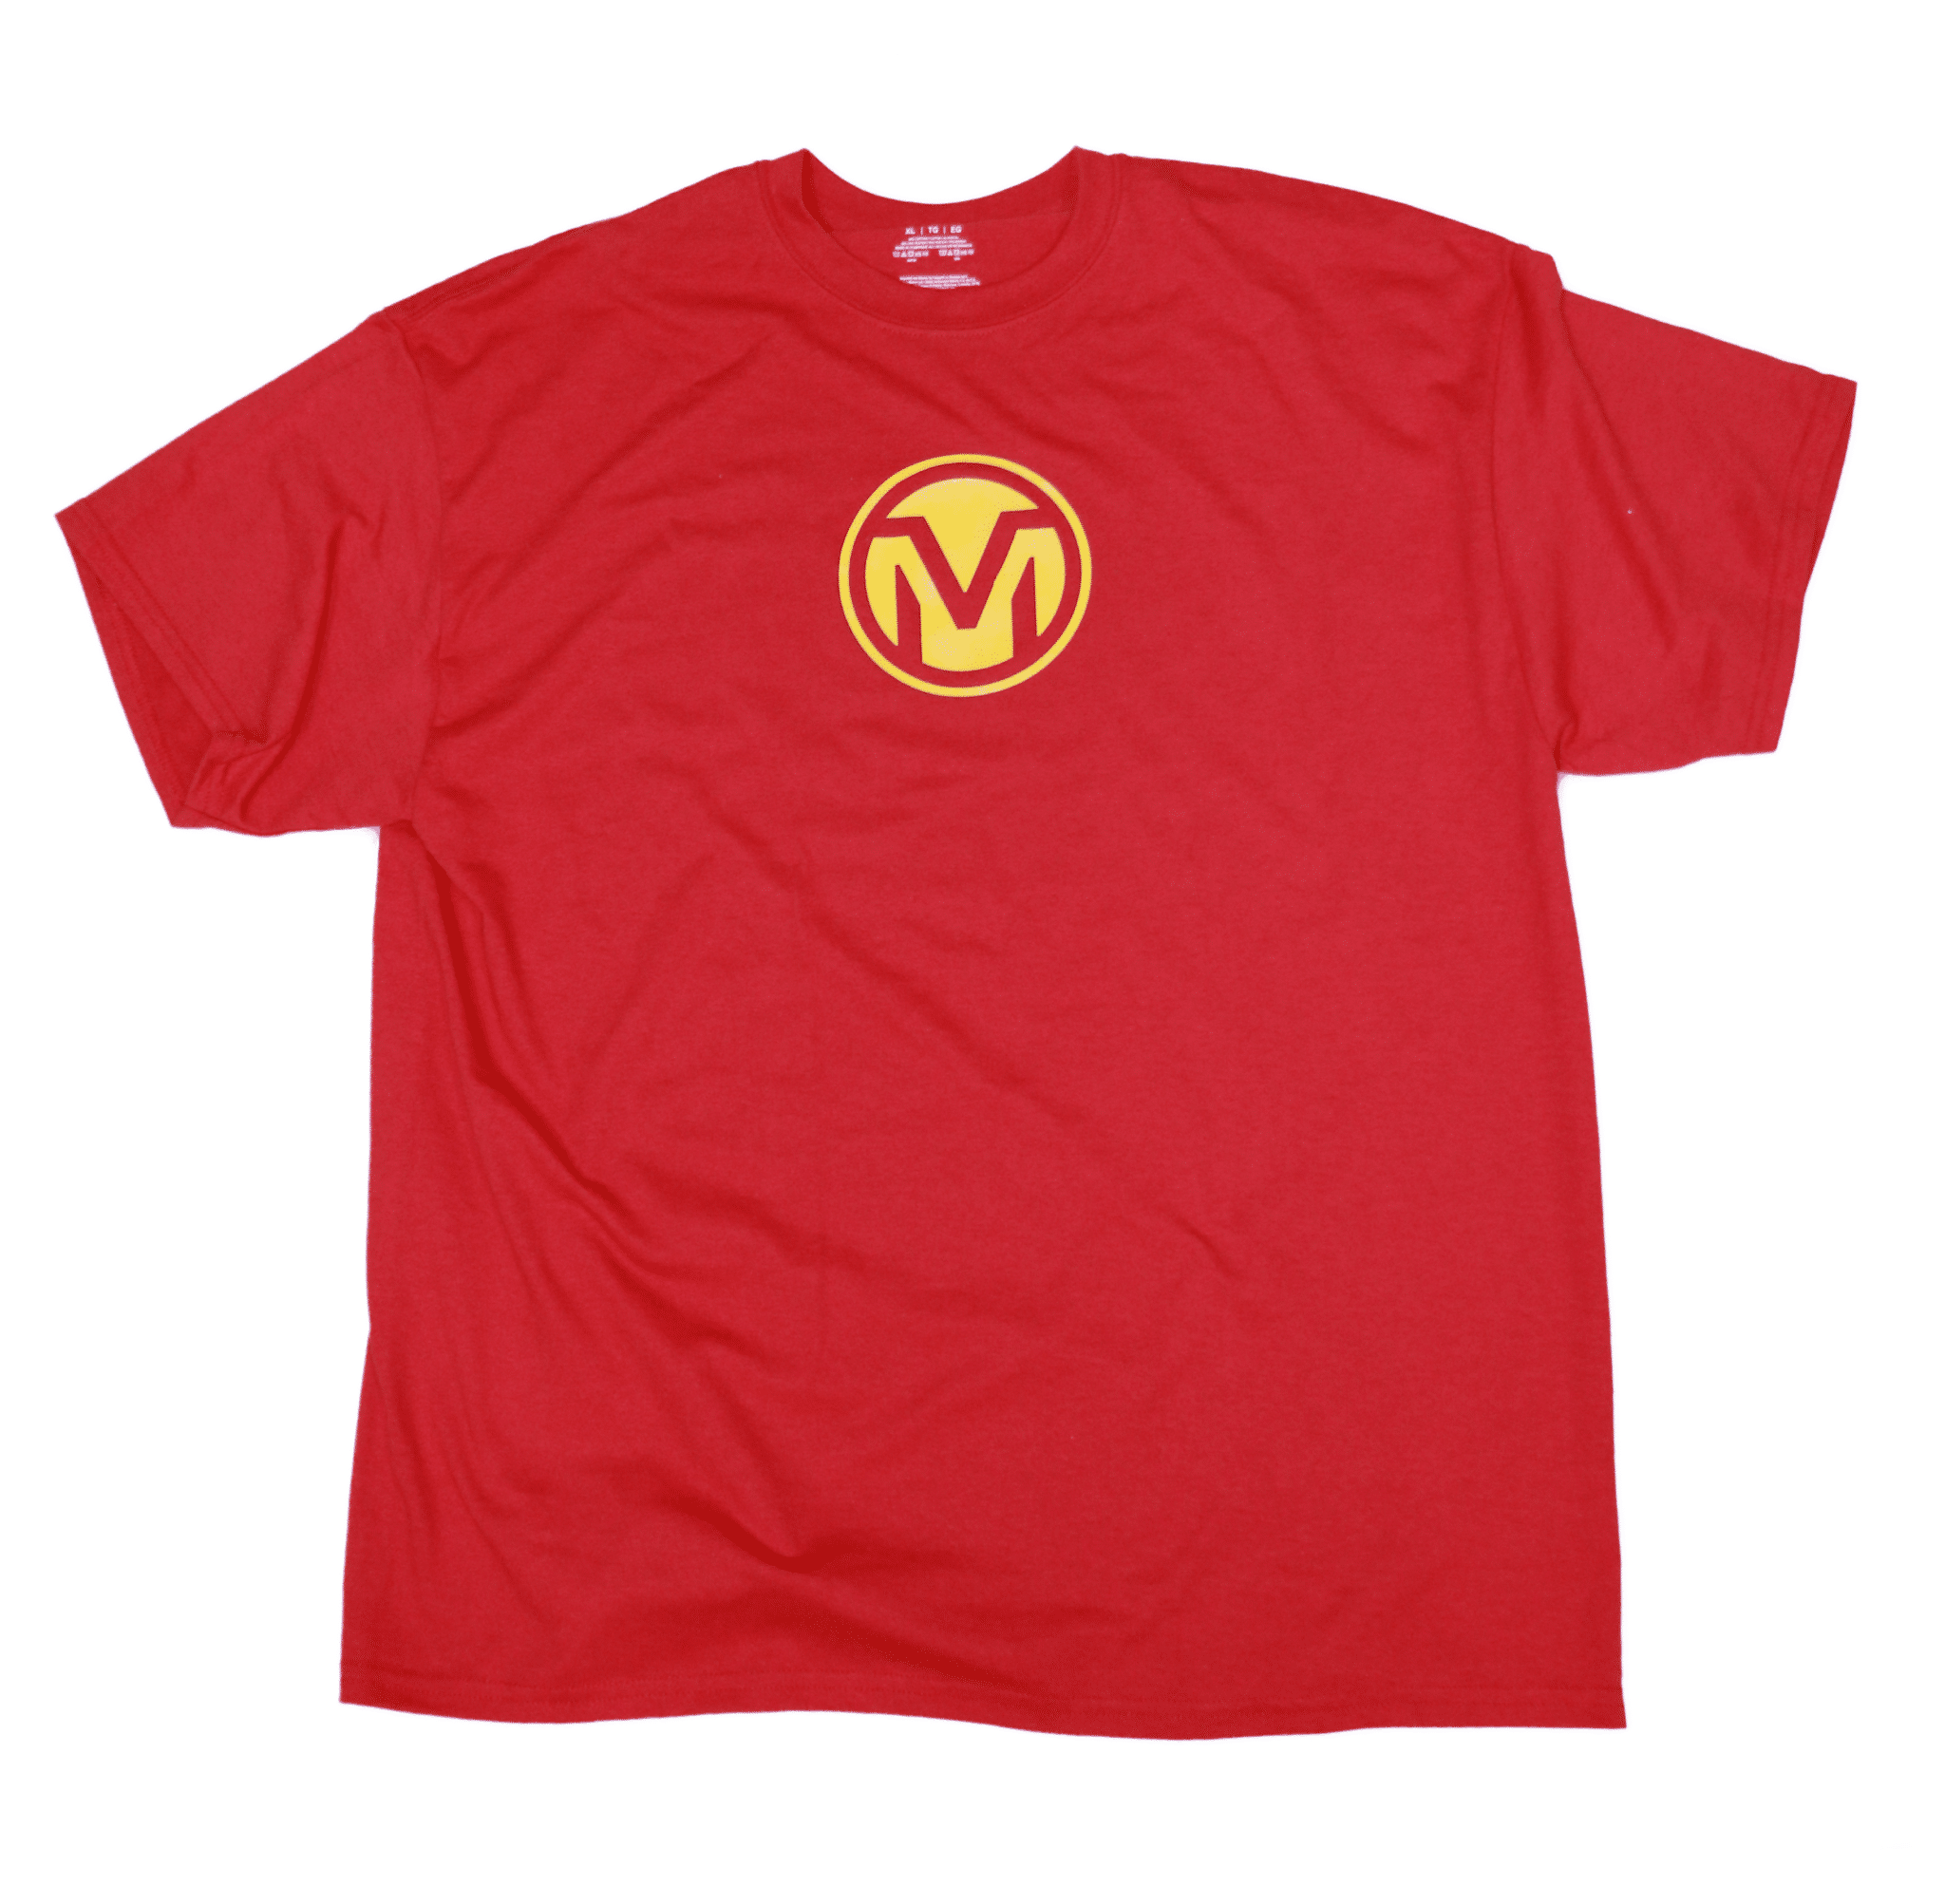 Red Energyman T-Shirt